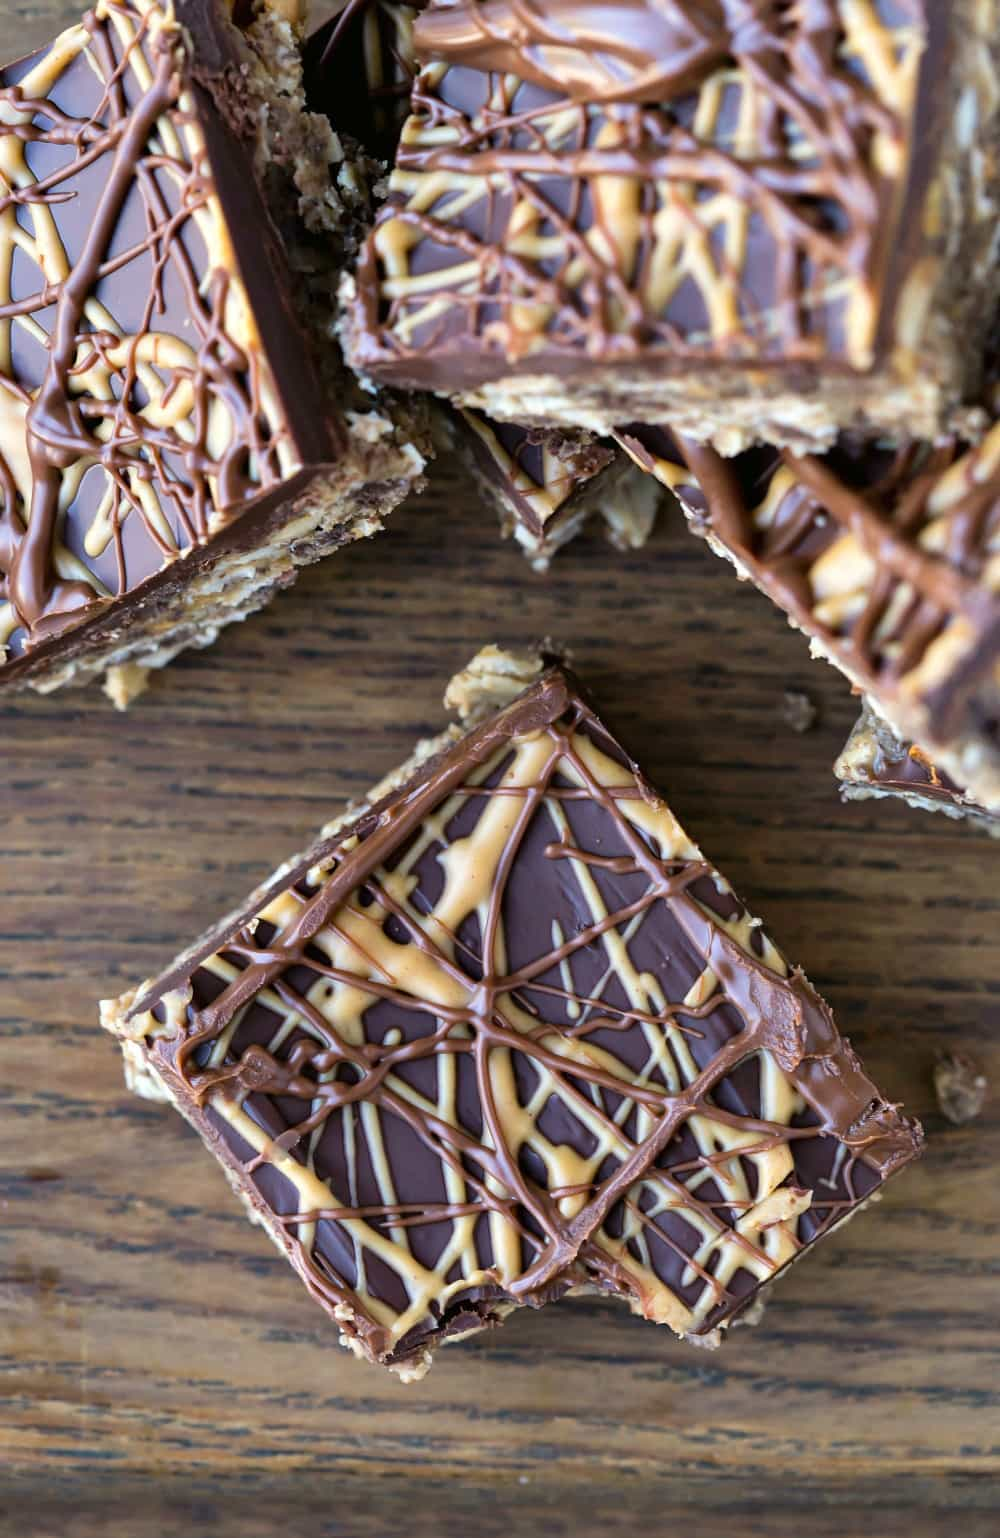 No-bake holiday cookie swap ideas: Peanut butter and chocolate cookie bars from I Heart Eating